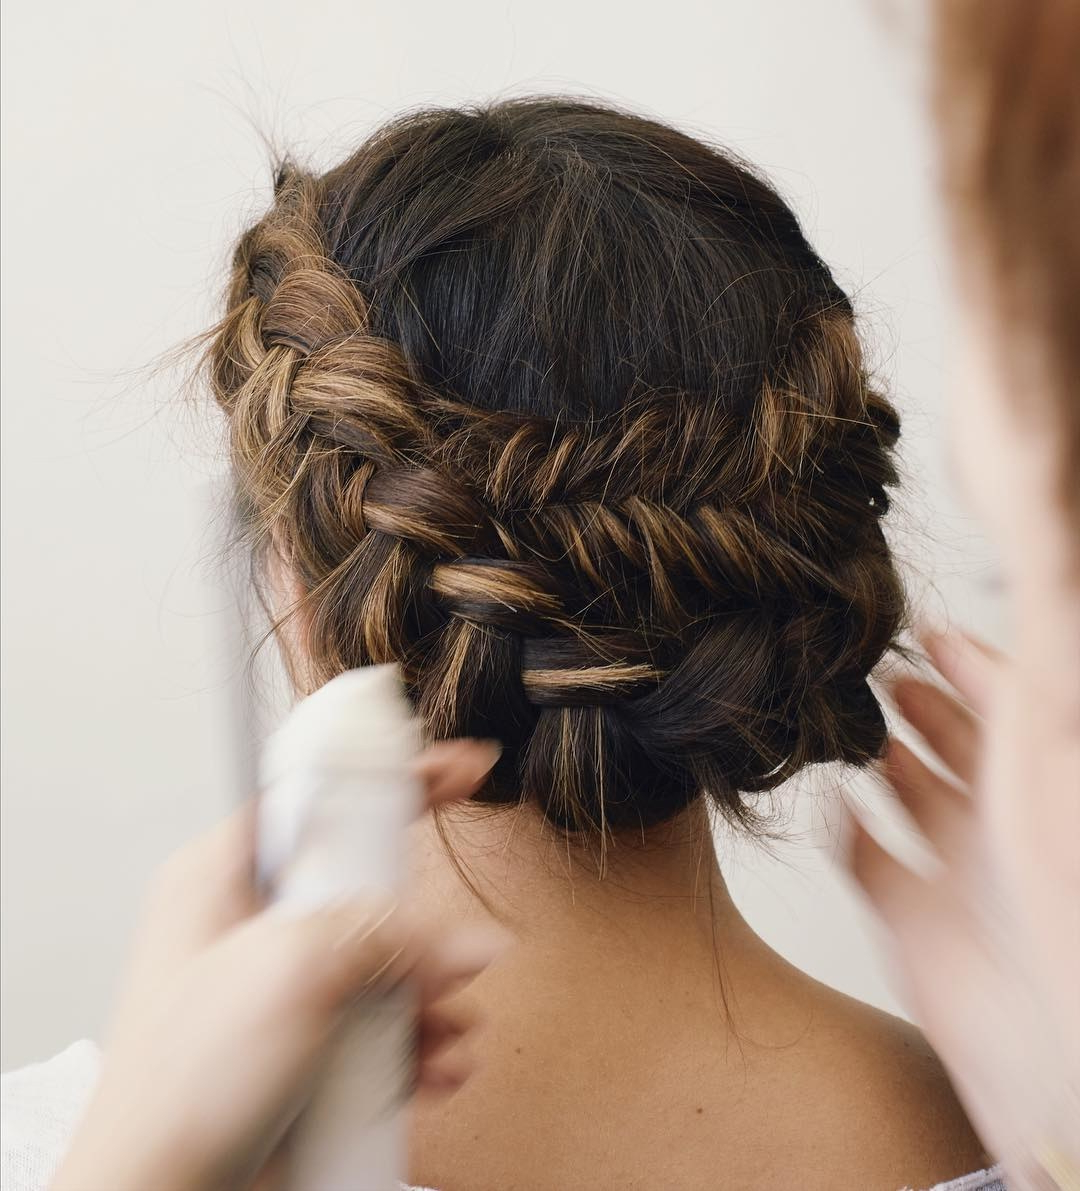 Brides Pertaining To Widely Used French Braided Halfdo Bridal Hairstyles (View 6 of 20)